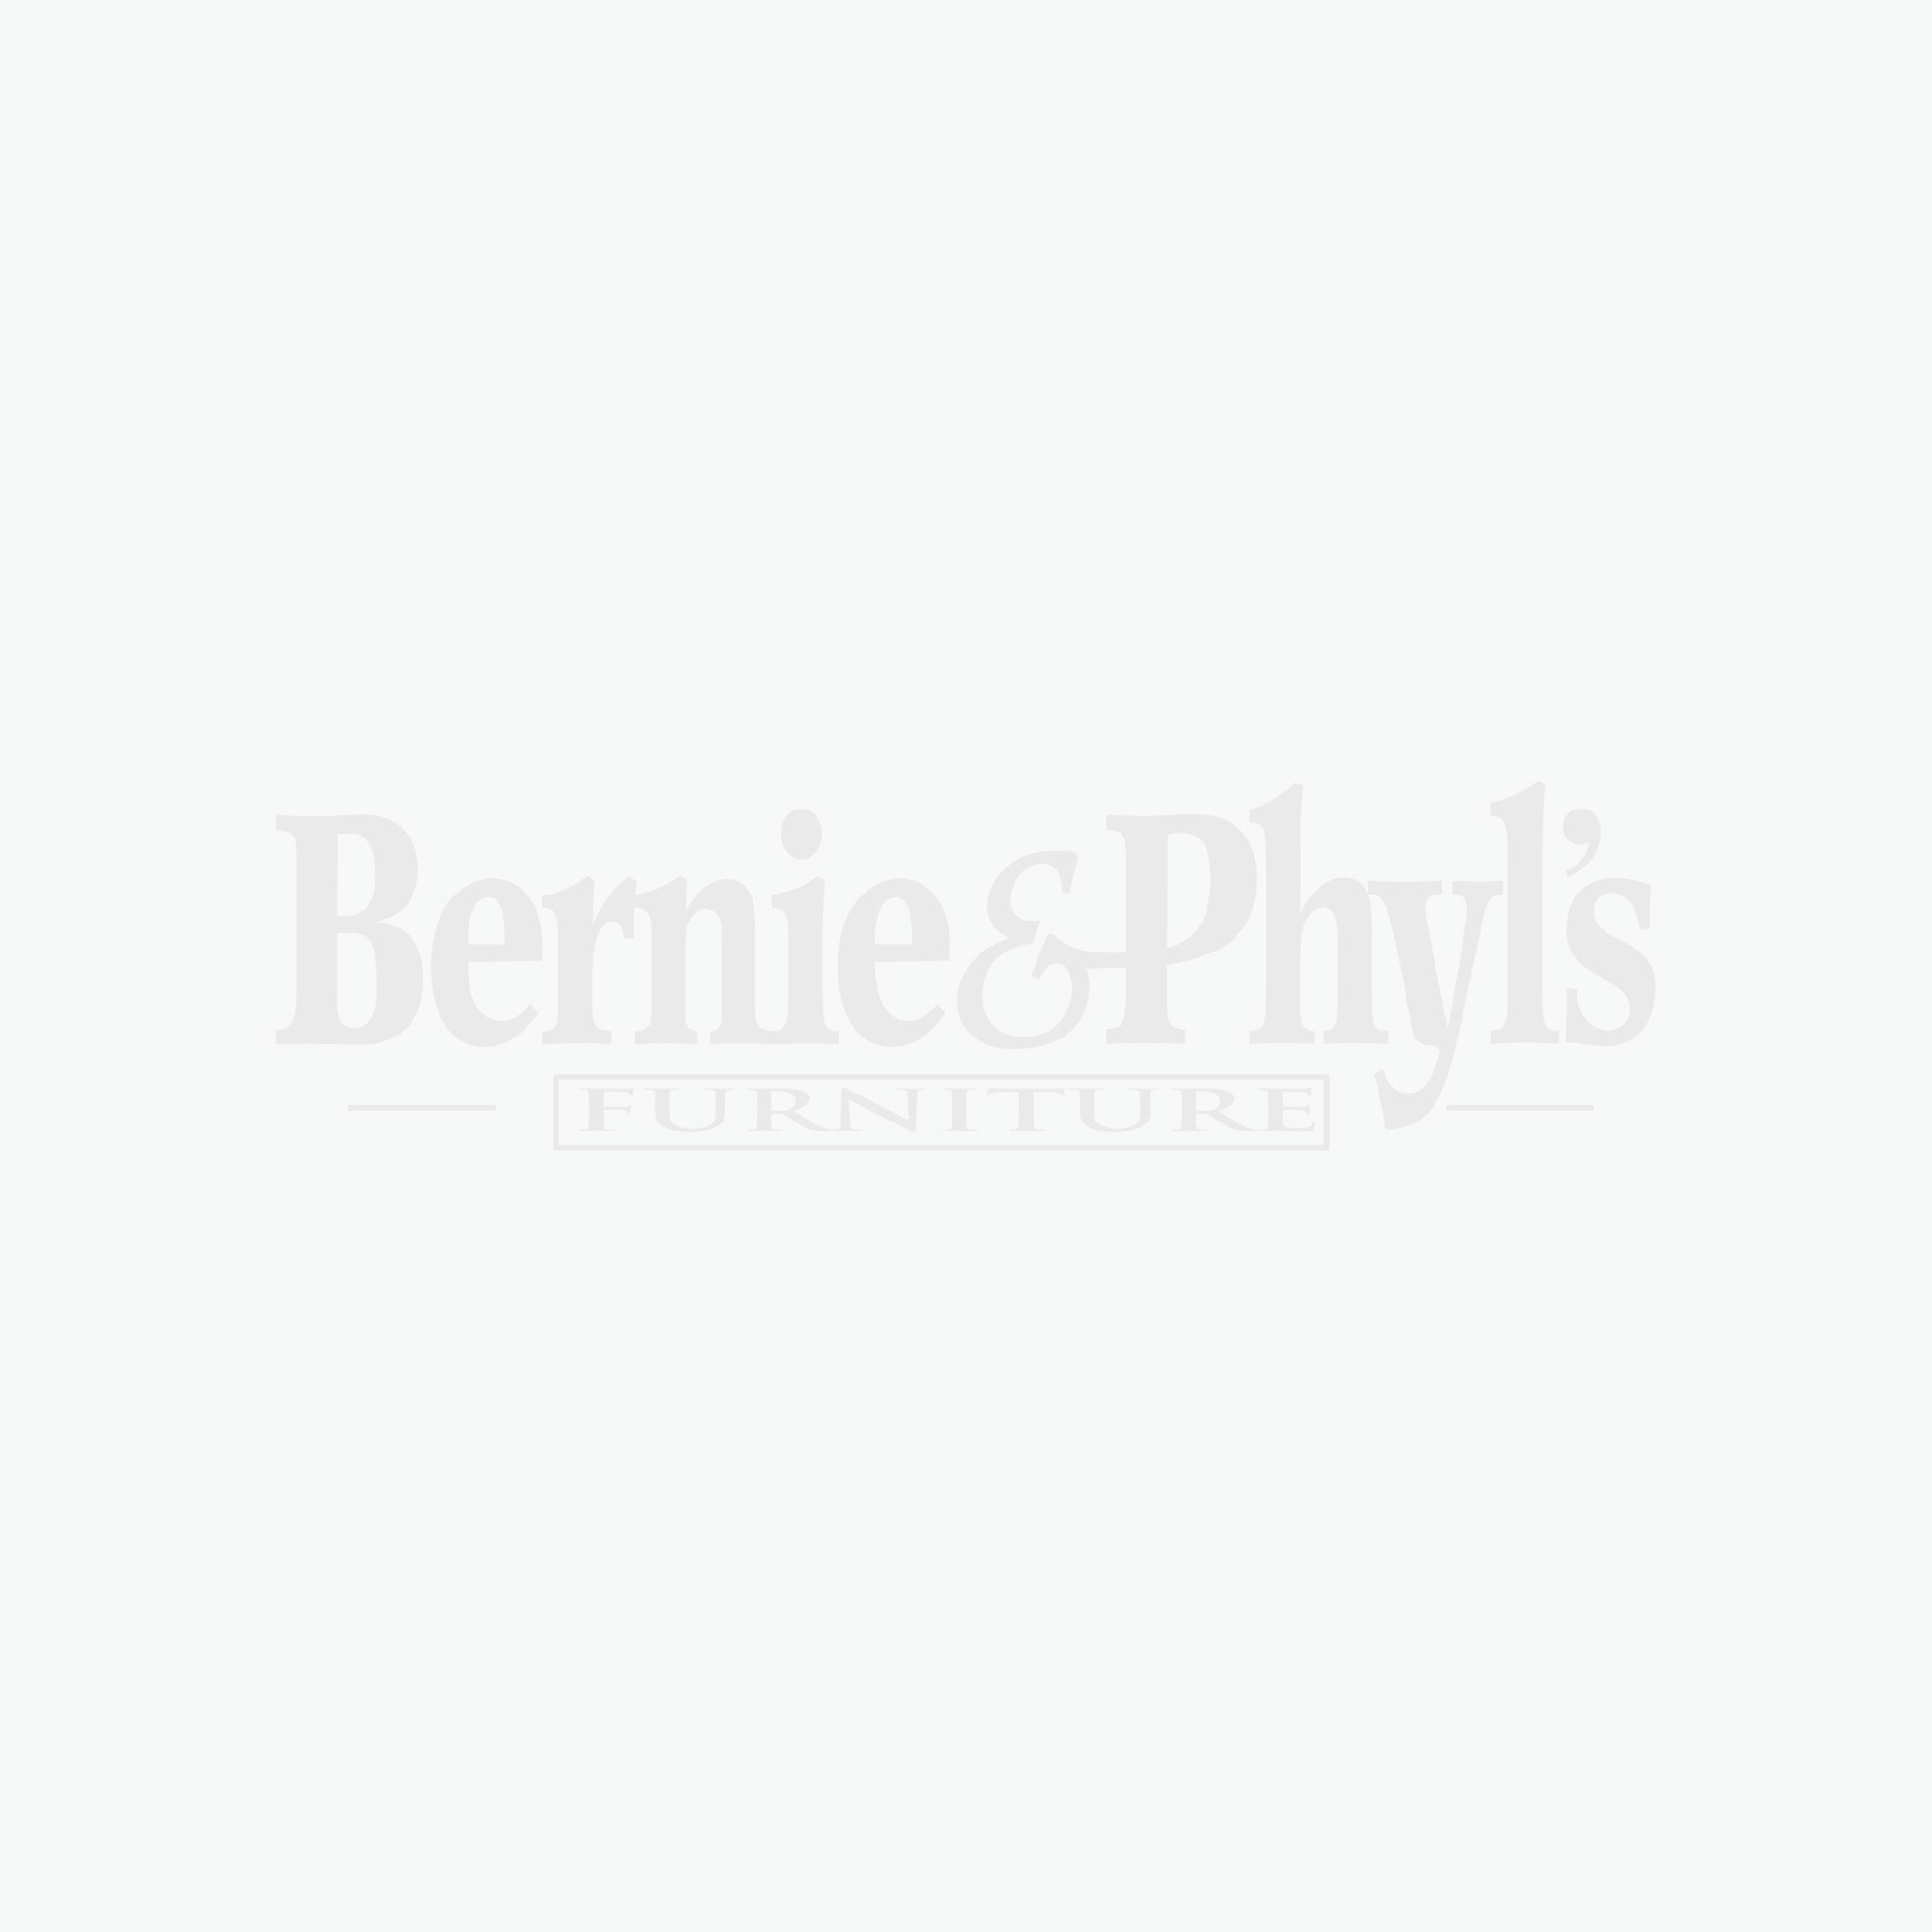 adirondack dining table bernie phyl s furniture by